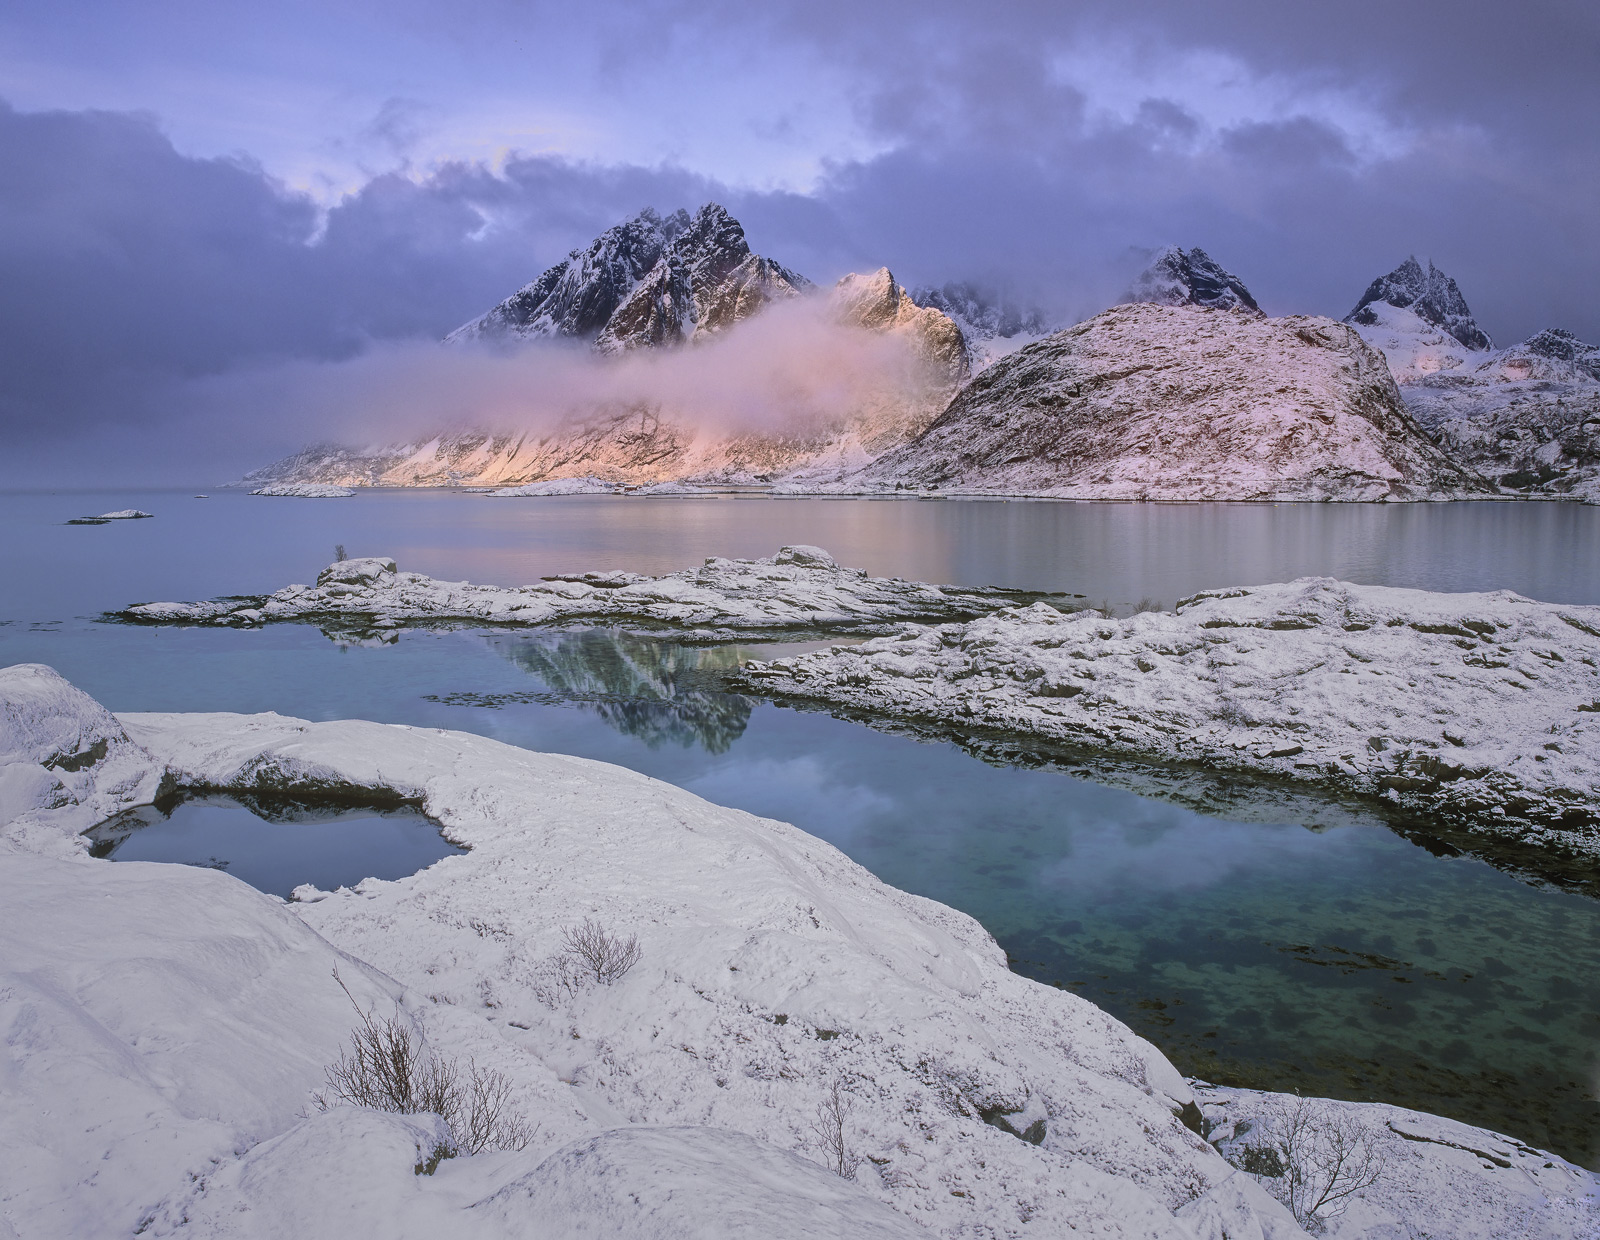 A final flurry of new snow settled across the roads that skirt the amazing mountains of Lofoten. I hoped that the sun would...